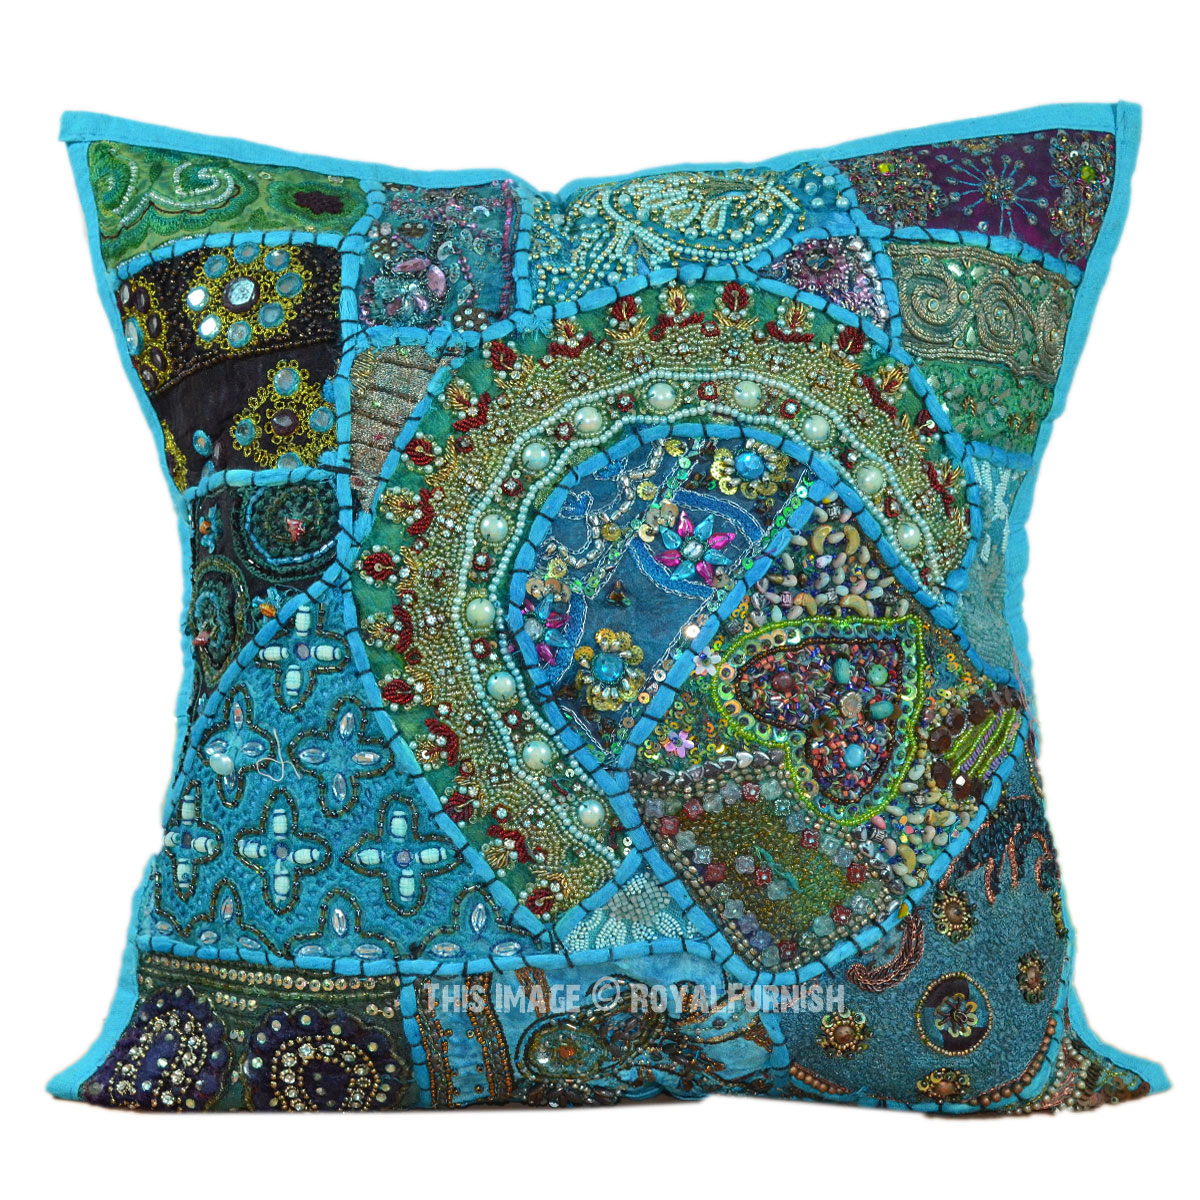 Decorative Pillows With Beads : 16X16